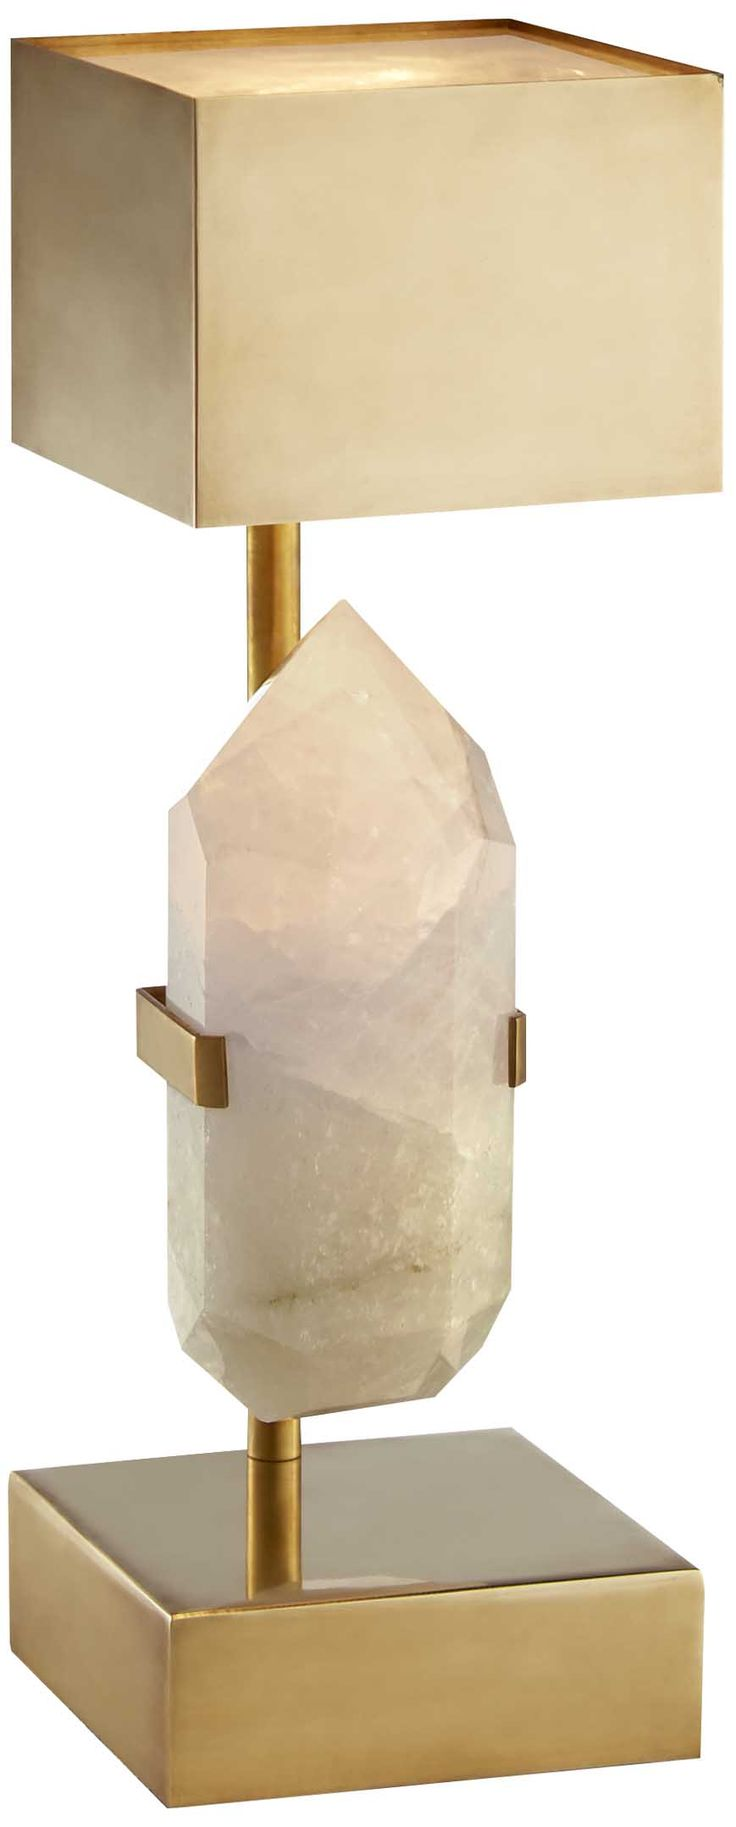 KELLY WEARSTLER | HALCYON DESK LAMP. Hand-selected natural quartz and sculptural brass